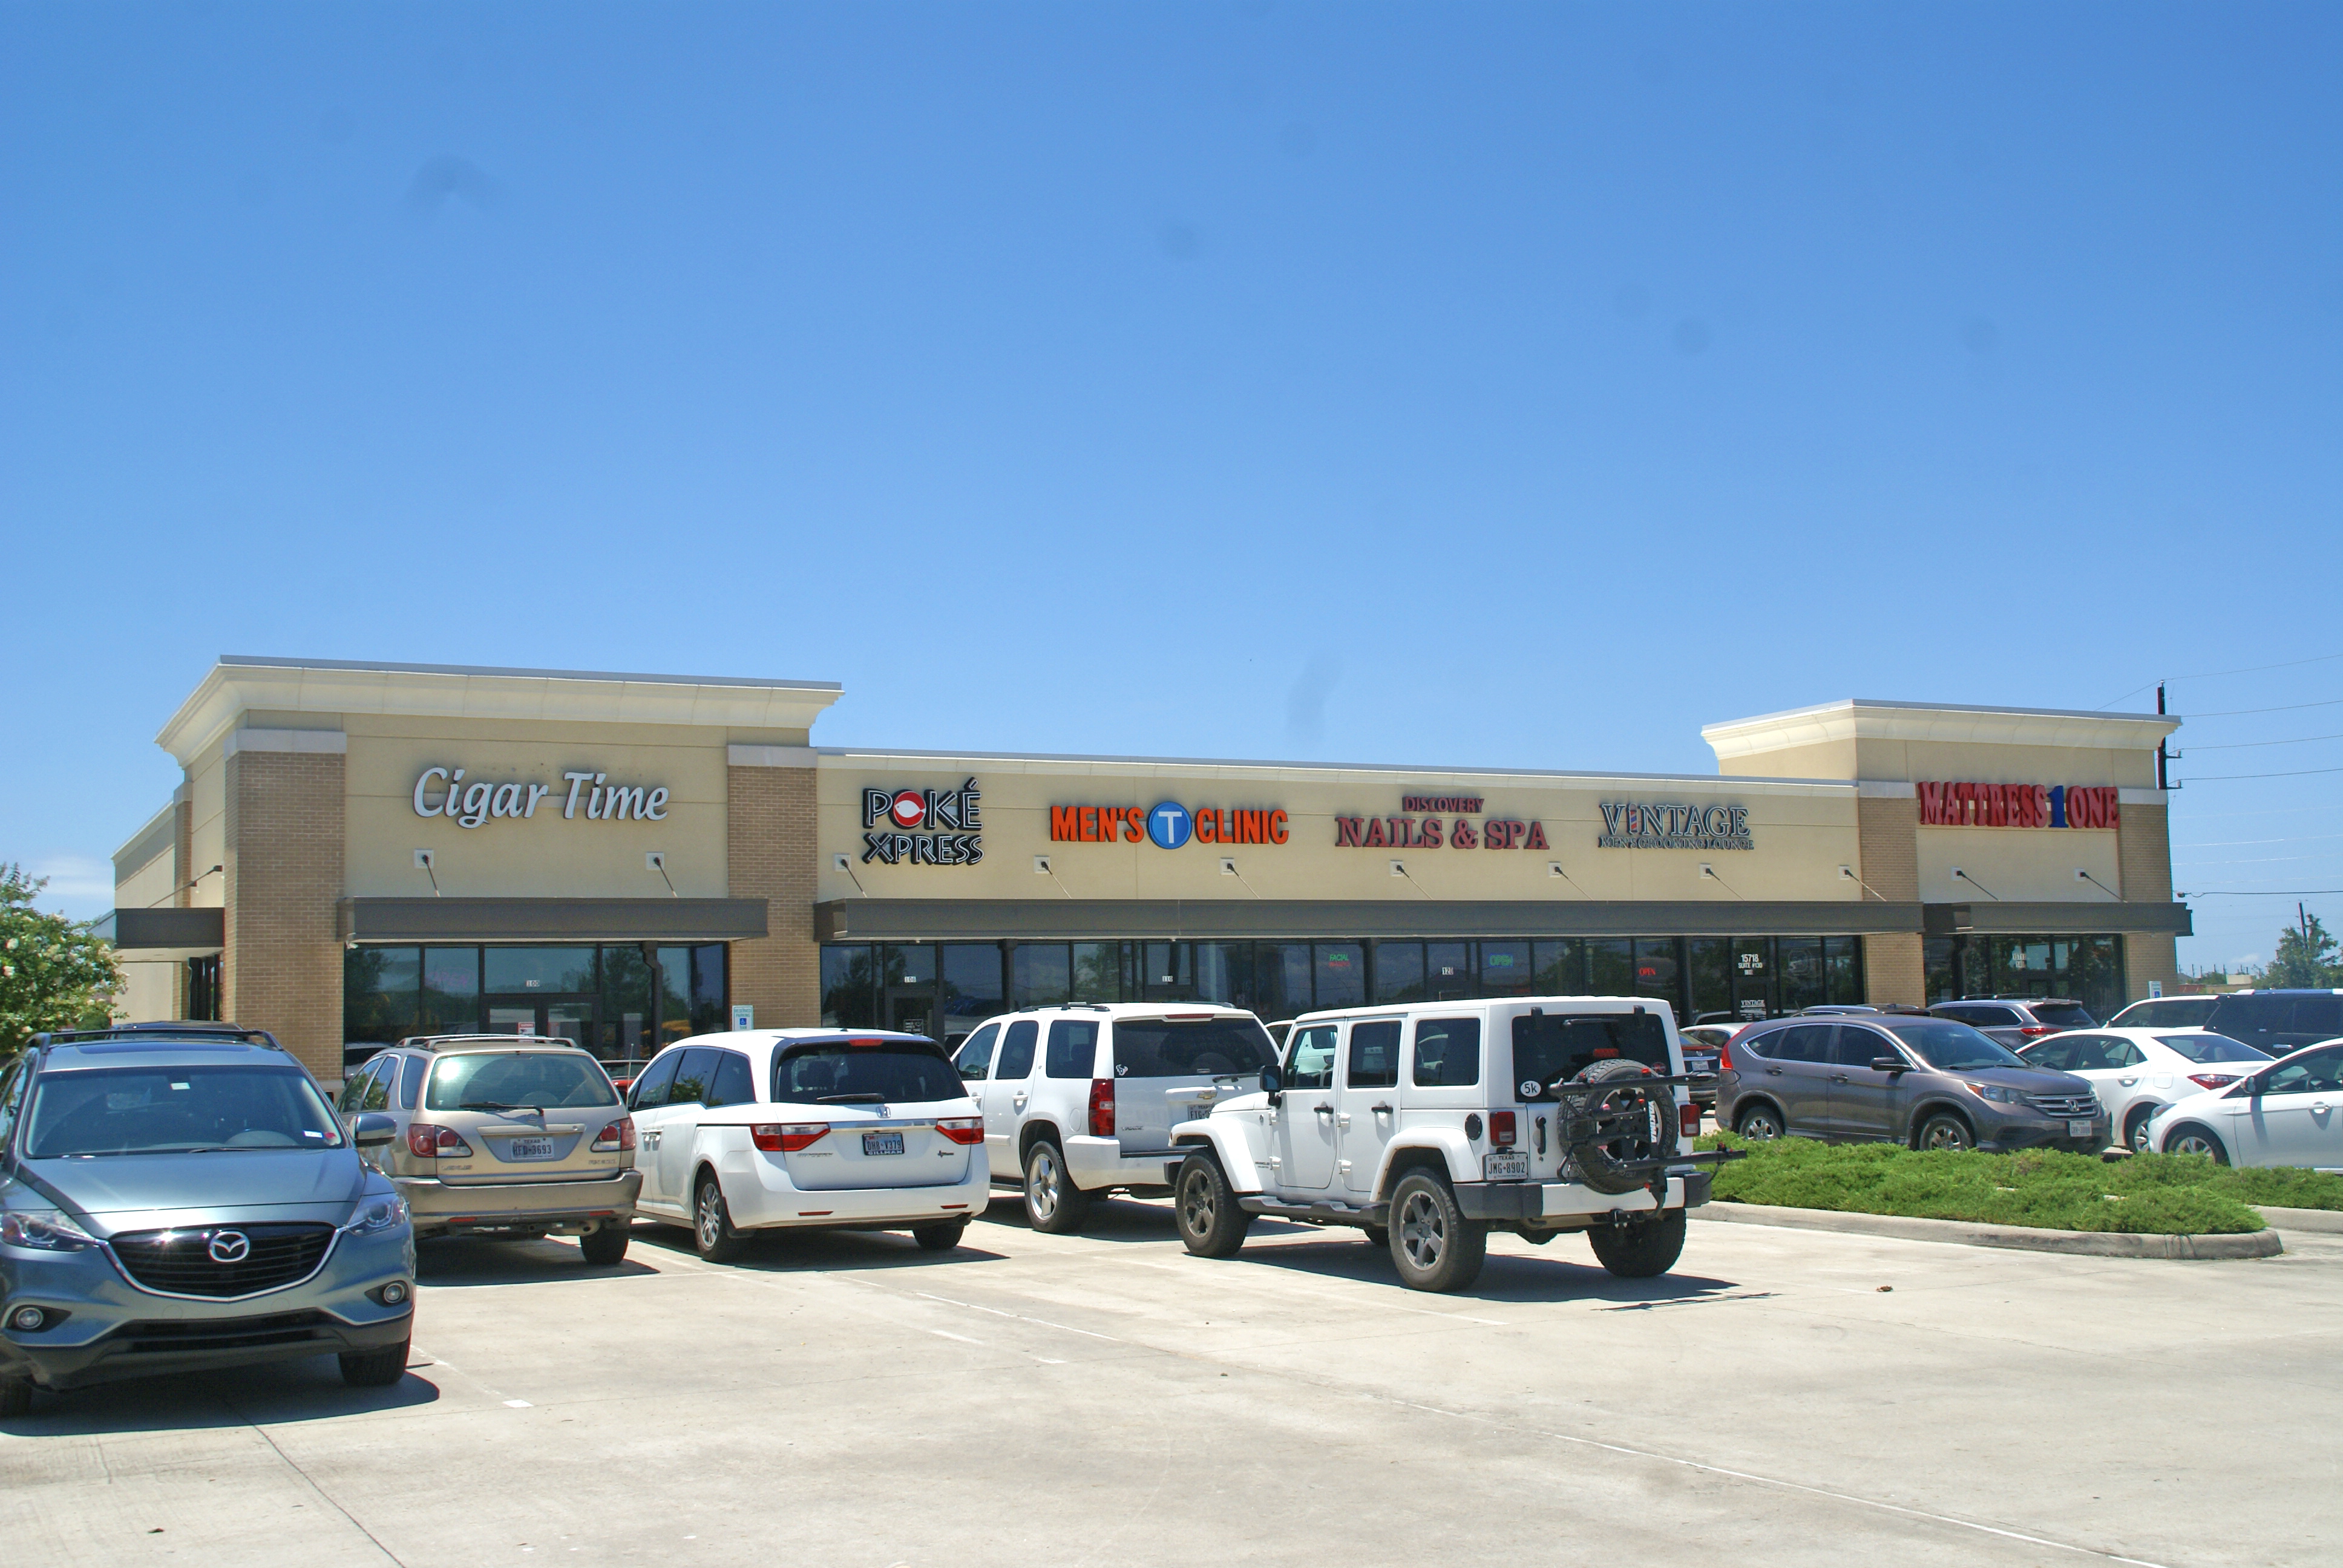 Discovery Bay Shopping Center